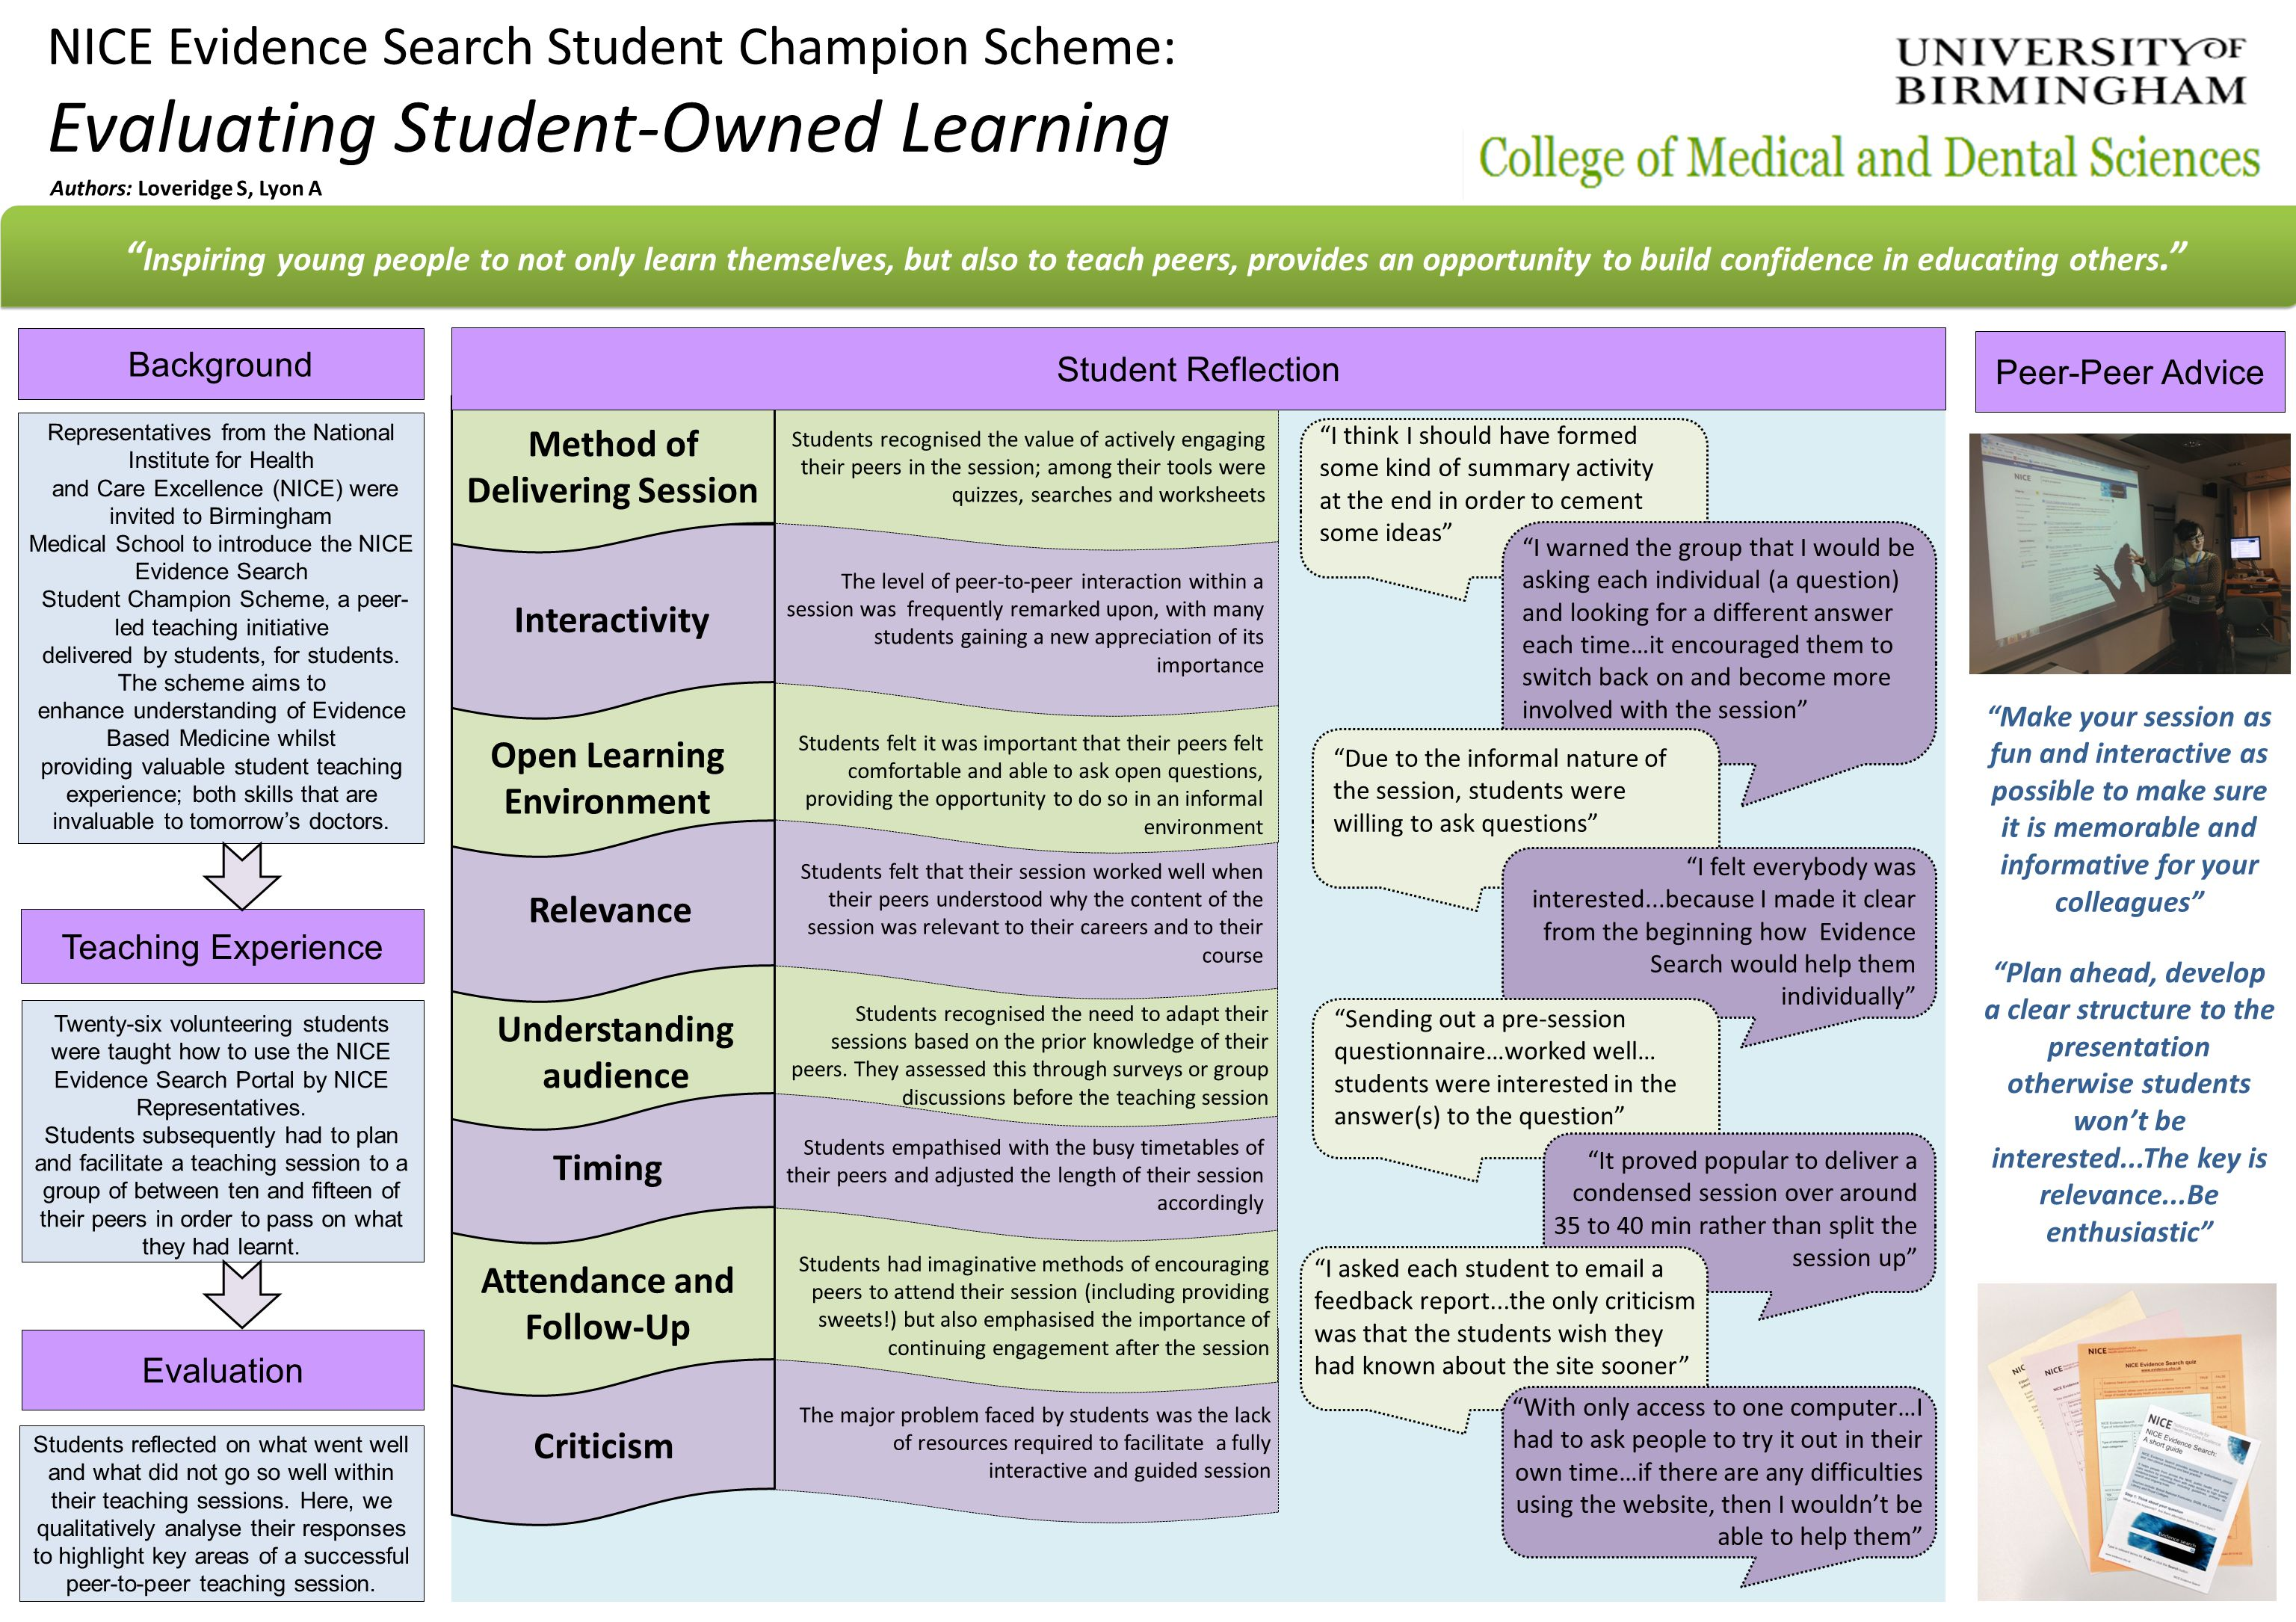 Criticism NICE Evidence Search Student Champion Scheme: Evaluating Student-Owned Learning Teaching Experience Background Peer-Peer Advice Evaluation Inspiring young people to not only learn themselves, but also to teach peers, provides an opportunity to build confidence in educating others. Method of Delivering Session Open Learning Environment Interactivity Relevance Understanding audience Timing Attendance and Follow-Up Students recognised the value of actively engaging their peers in the session; among their tools were quizzes, searches and worksheets The level of peer-to-peer interaction within a session was frequently remarked upon, with many students gaining a new appreciation of its importance I think I should have formed some kind of summary activity at the end in order to cement some ideas Students felt it was important that their peers felt comfortable and able to ask open questions, providing the opportunity to do so in an informal environment Due to the informal nature of the session, students were willing to ask questions Students felt that their session worked well when their peers understood why the content of the session was relevant to their careers and to their course I felt everybody was interested...because I made it clear from the beginning how Evidence Search would help them individually Students recognised the need to adapt their sessions based on the prior knowledge of their peers.